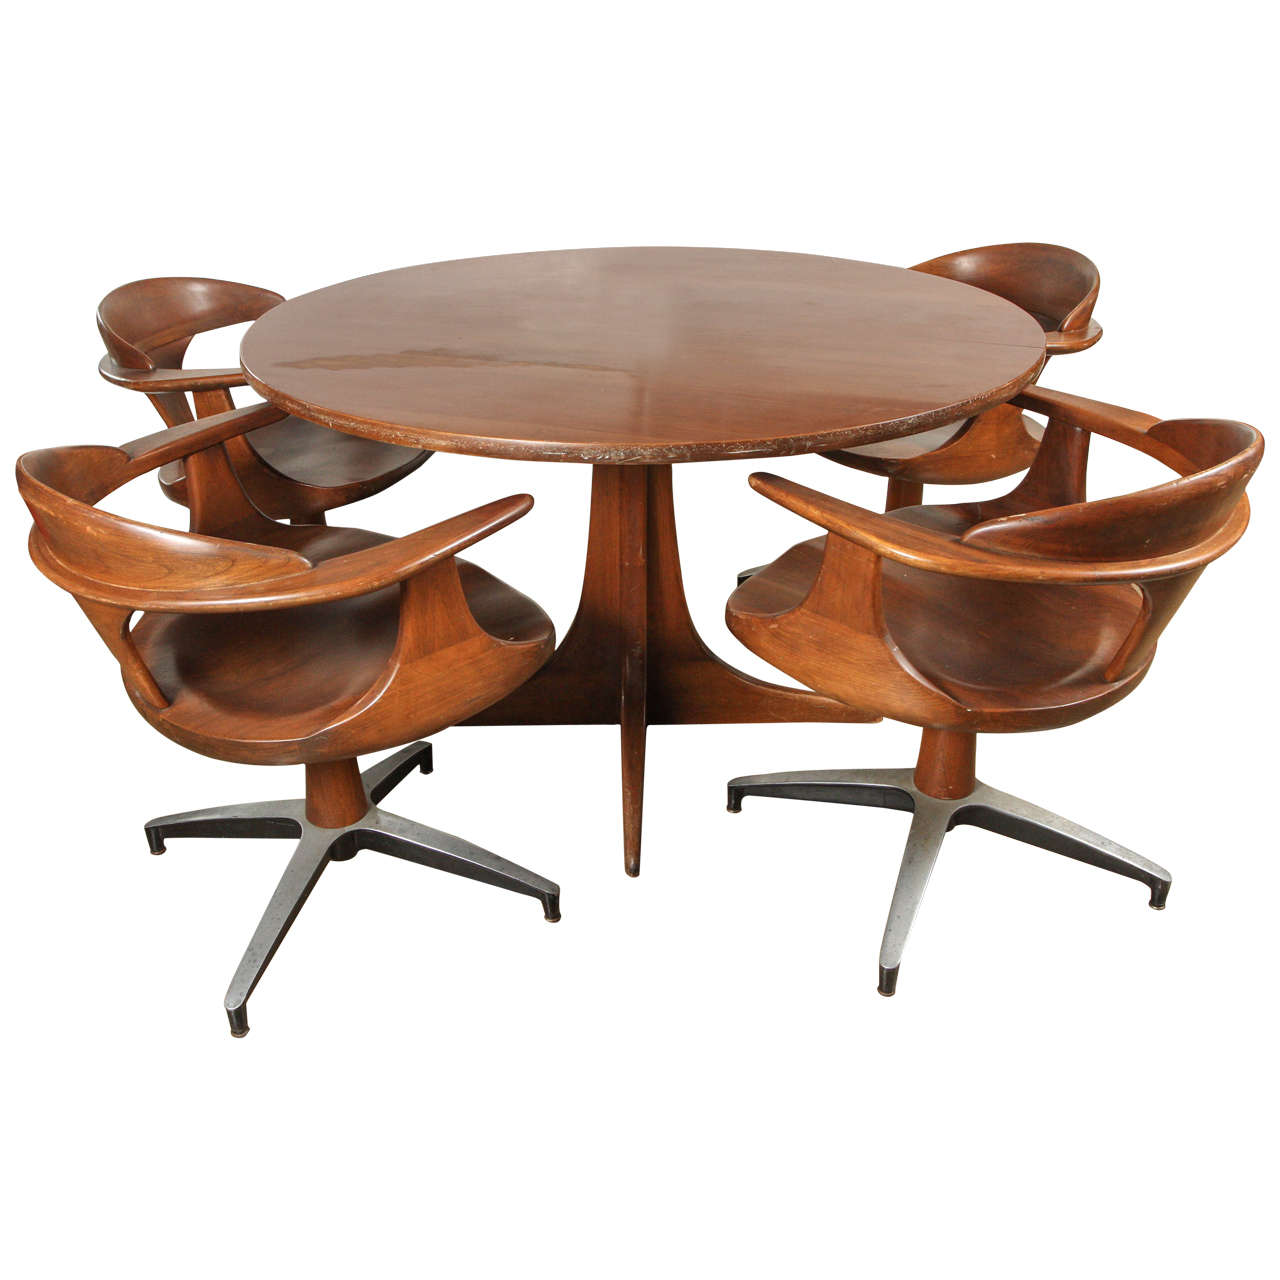 Heywood Wakefield Dining Table with Four Captain Chairs at  : X from www.1stdibs.com size 1280 x 1280 jpeg 90kB